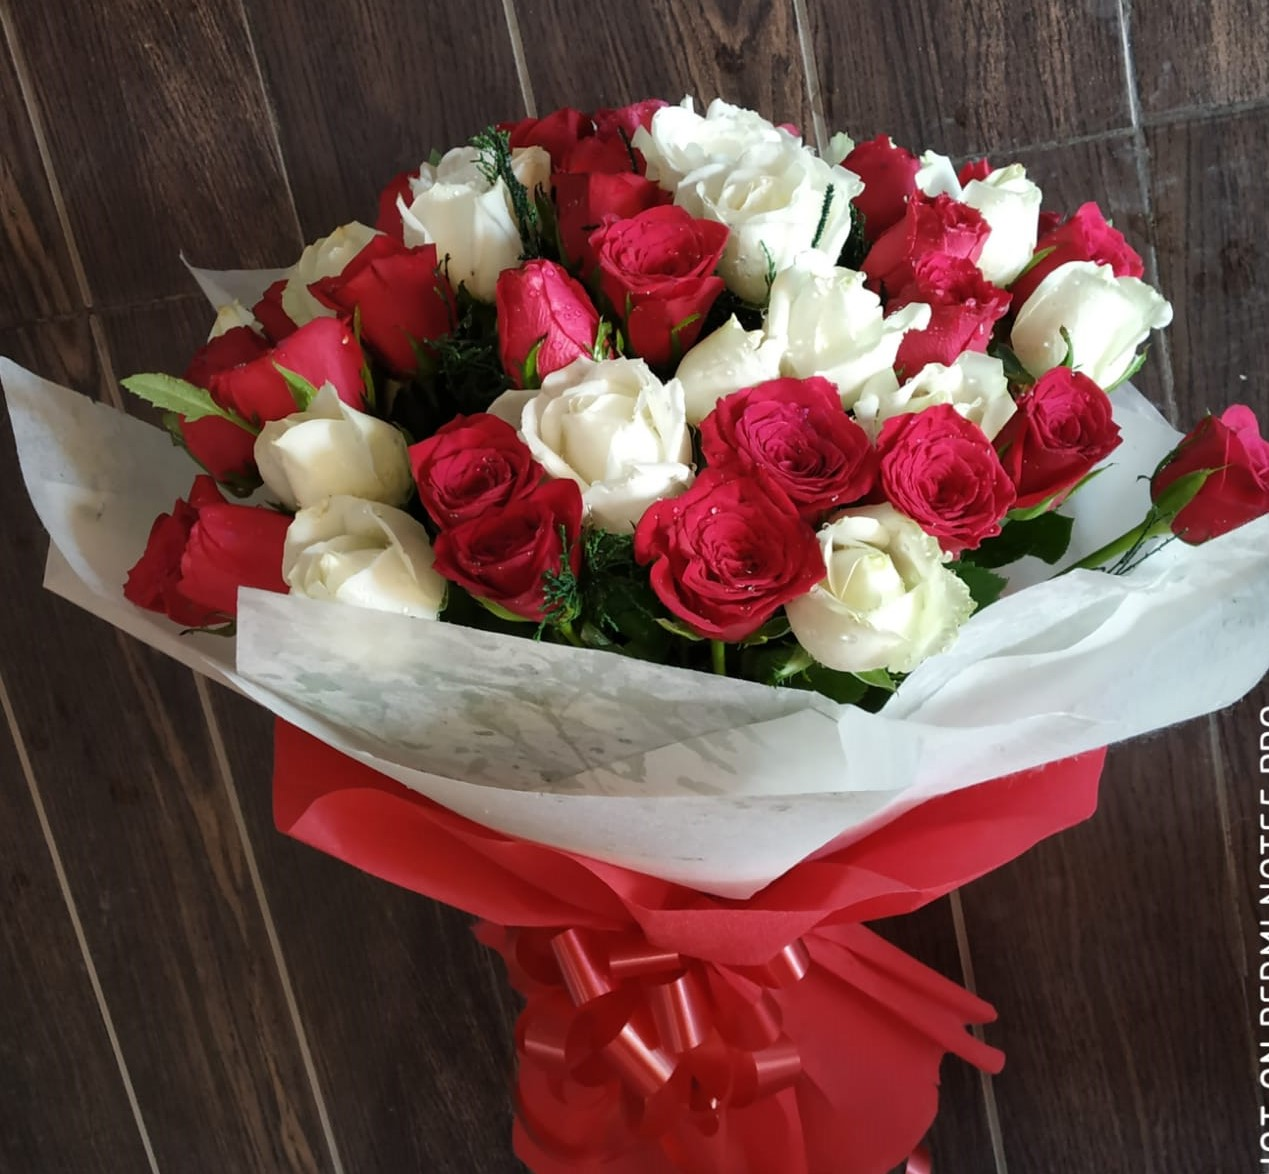 send flower Jagatpuri DelhiRed & White Roses in Duble Layer Packing